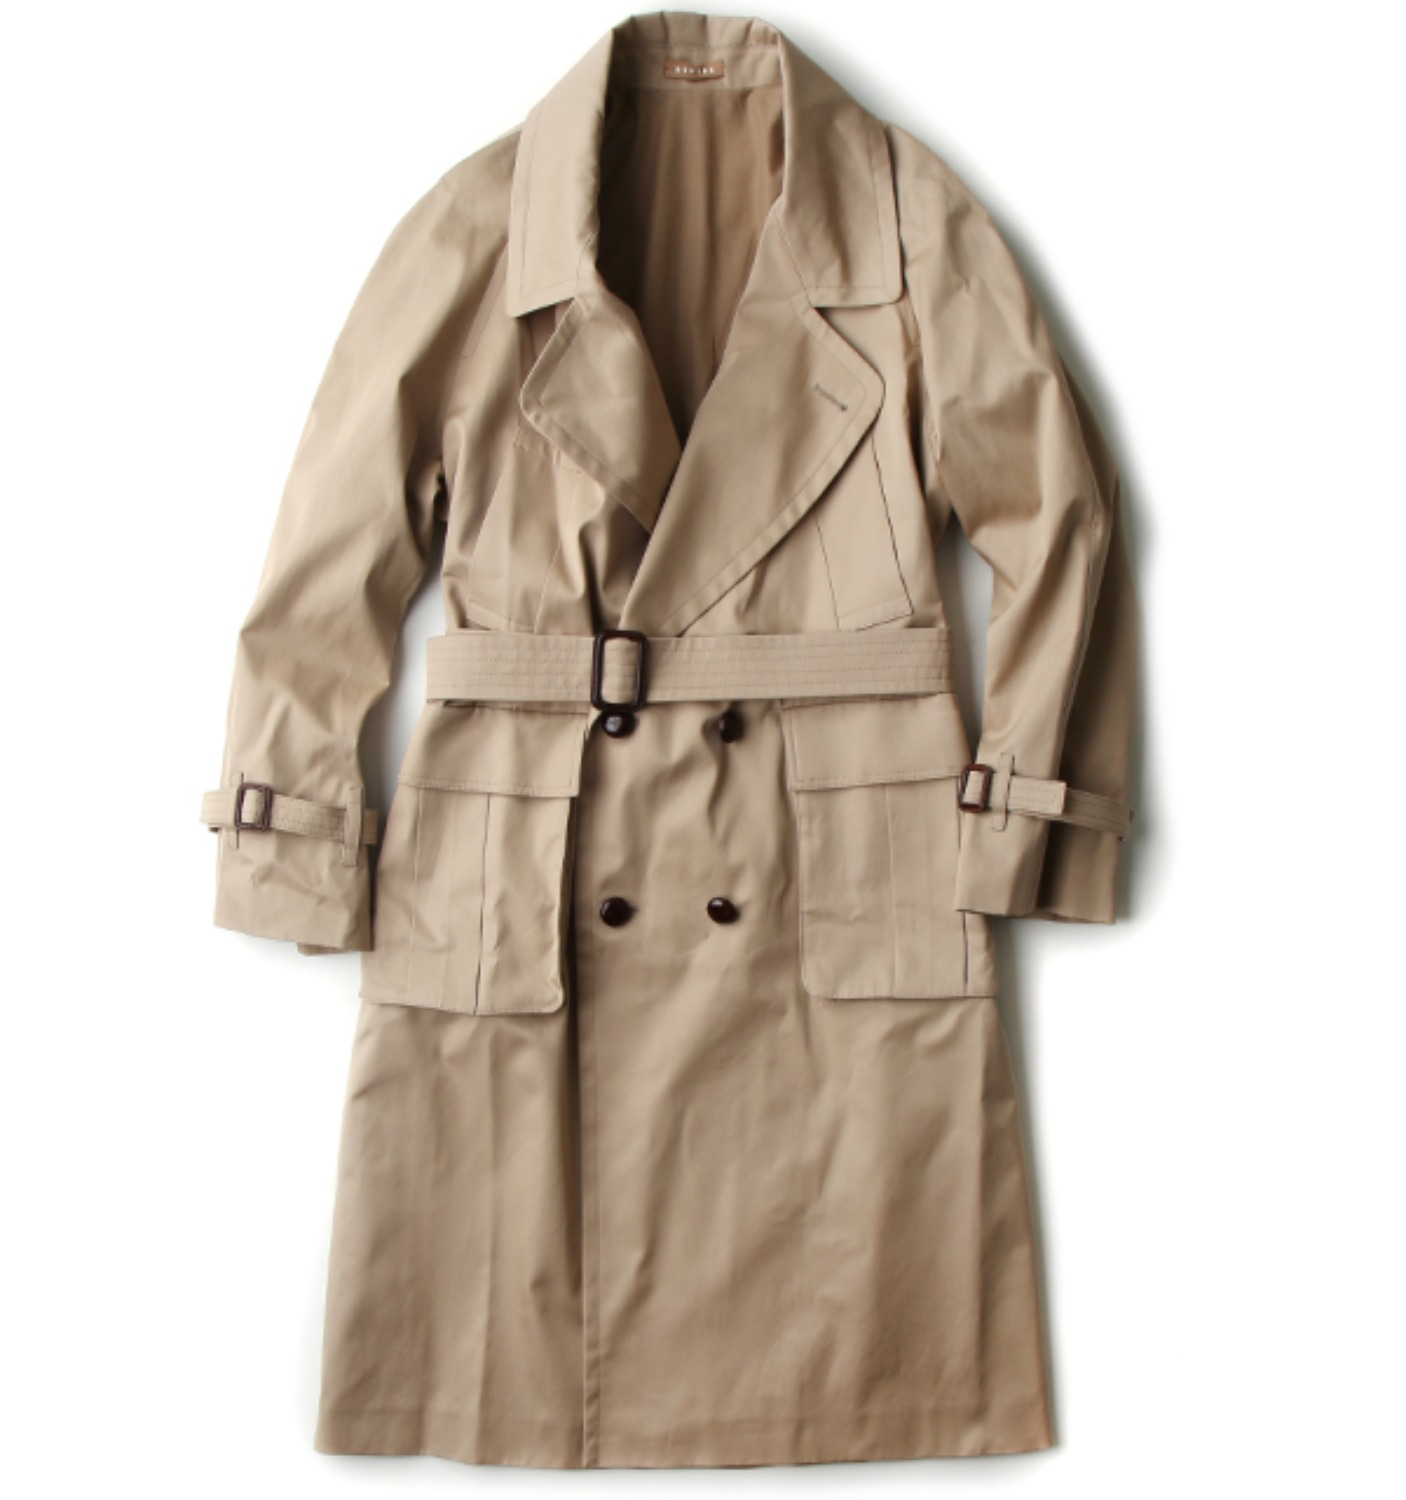 CALI 2 Modern trench coat